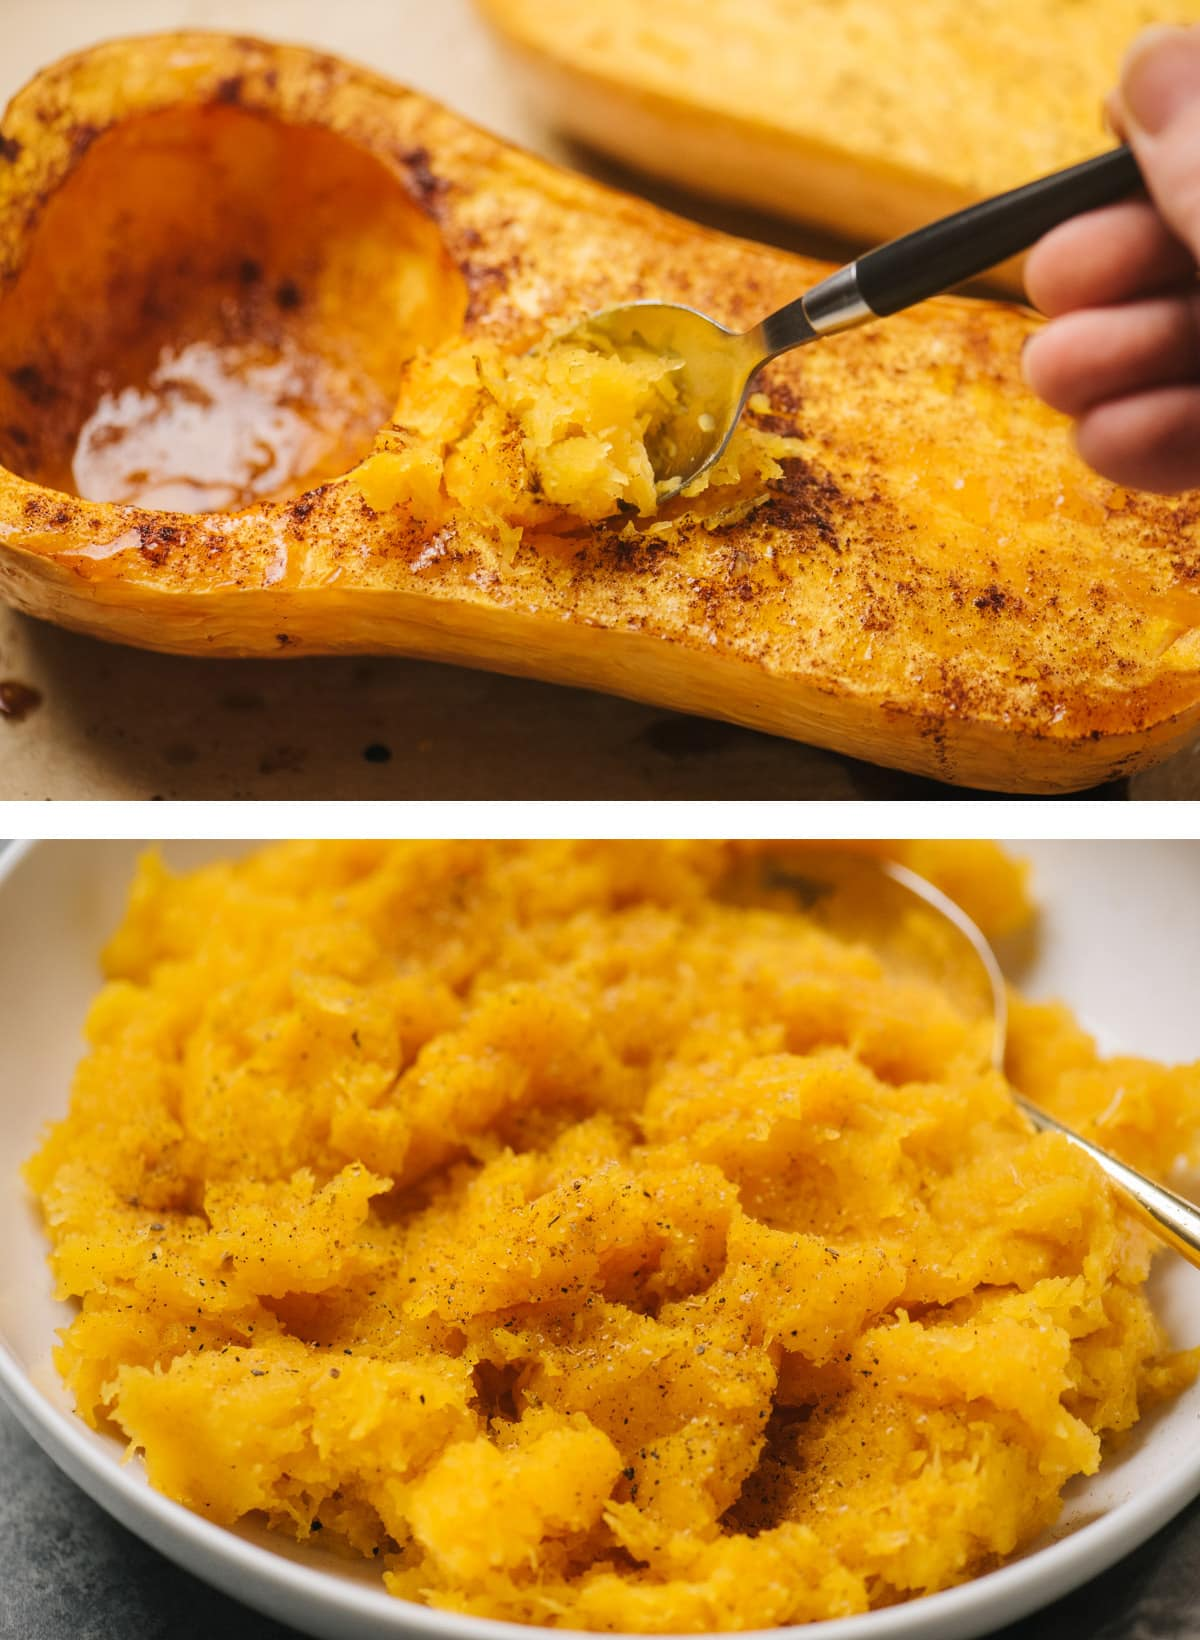 Top - scooping flesh from a roasted butternut squash half; bottom - mashed butternut squash in a white bowl with a gold serving spoon.